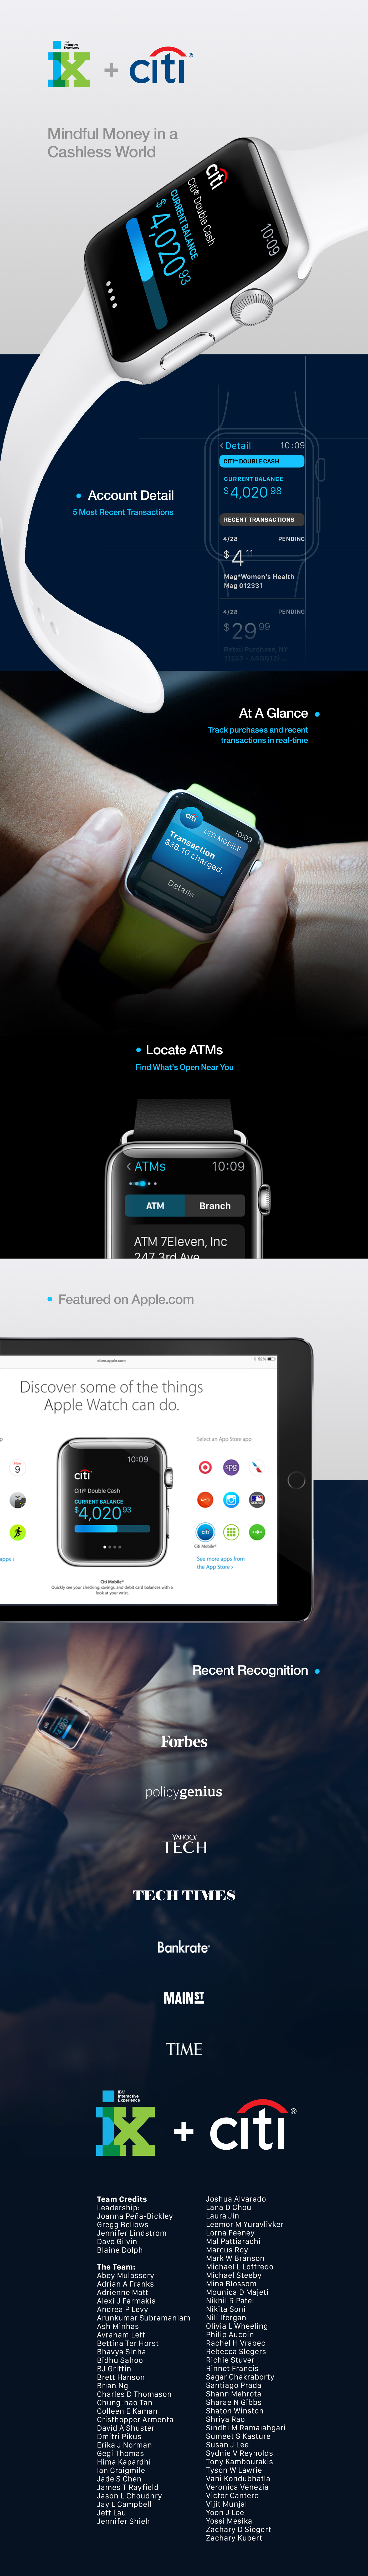 apple watch wearables wearable tech iwatch mobile IoT IBMiX mobile banking finance Financial Services IBM Interactive Experience Canne Lions